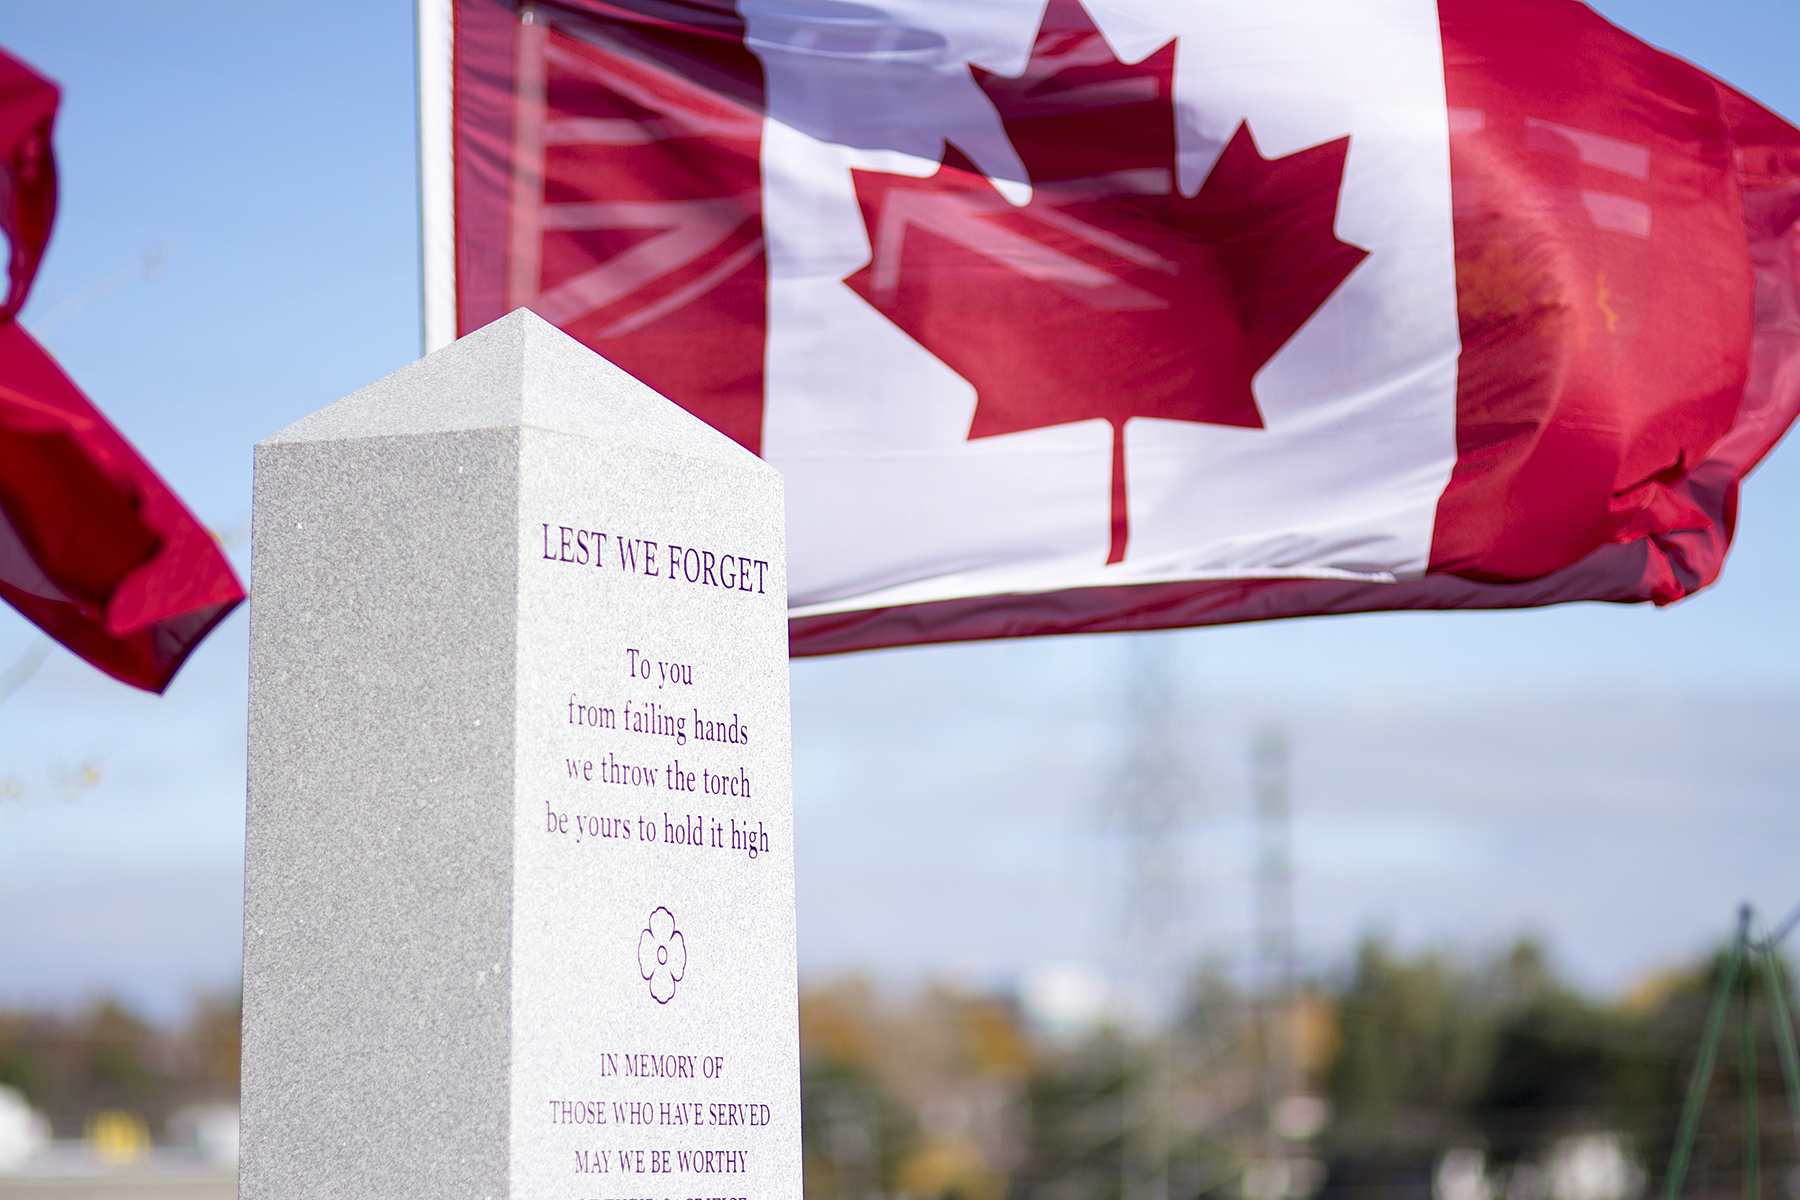 The Canadian flag snaps in a brisk wind beside the Seneca College cenotaph on the North York Newnham campus in Toronto, Ontario, during the November 11, 2016, Remembrance Day ceremony. PHOTO: Tai Nguyen, Seneca College